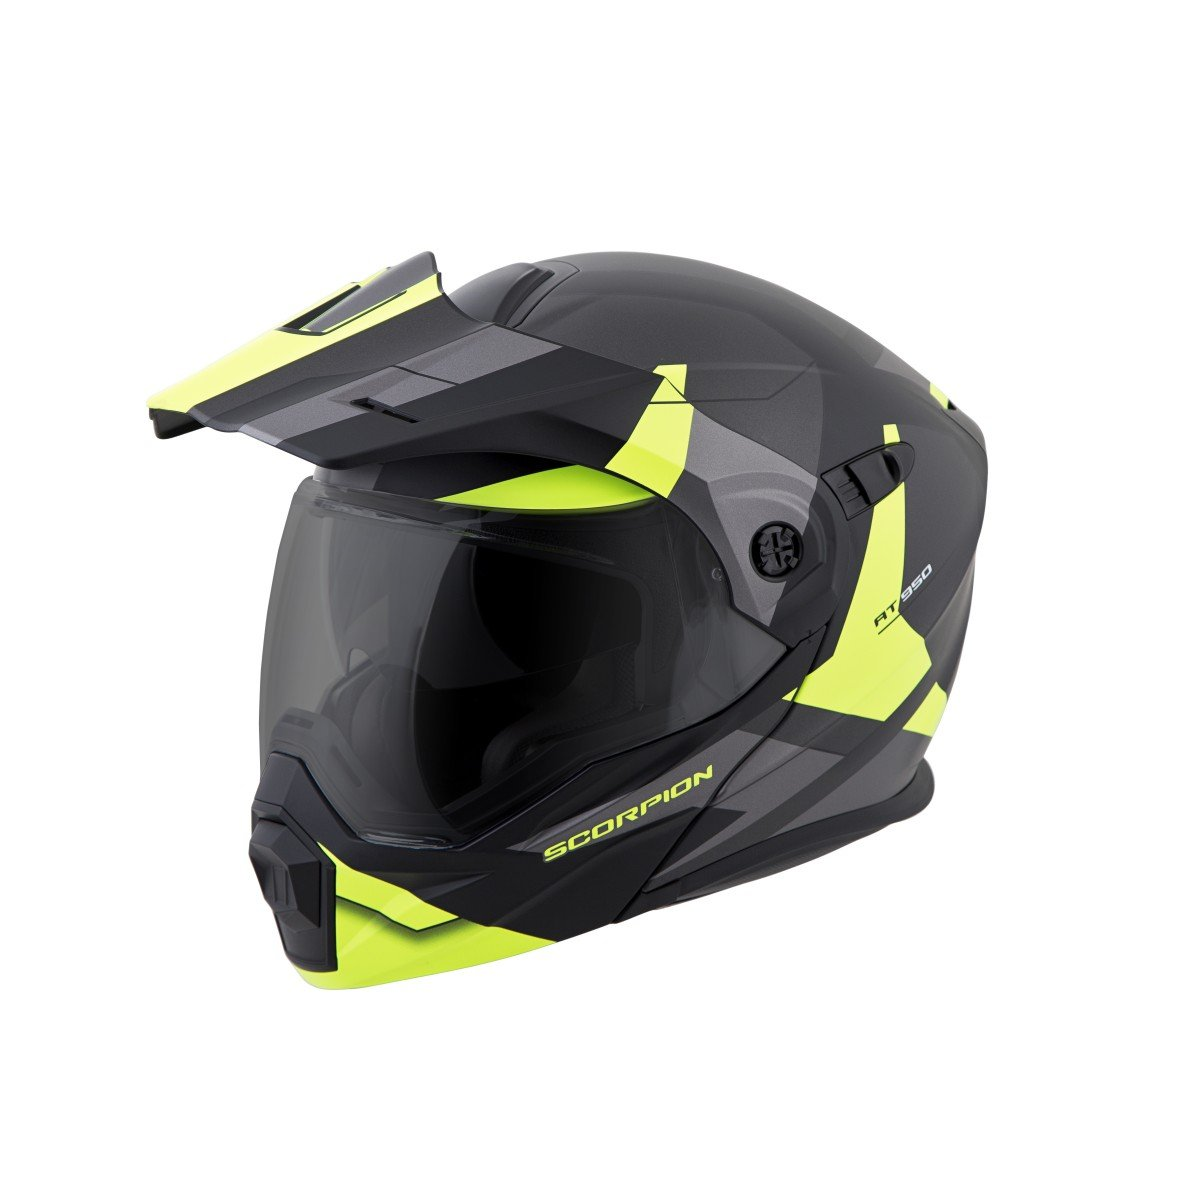 ScorpionEXO Unisex-Adult Modular/Flip Up Adventure Touring Motorcycle Helmet (Hi-Viz, Large) (EXO-AT950 Neocon)